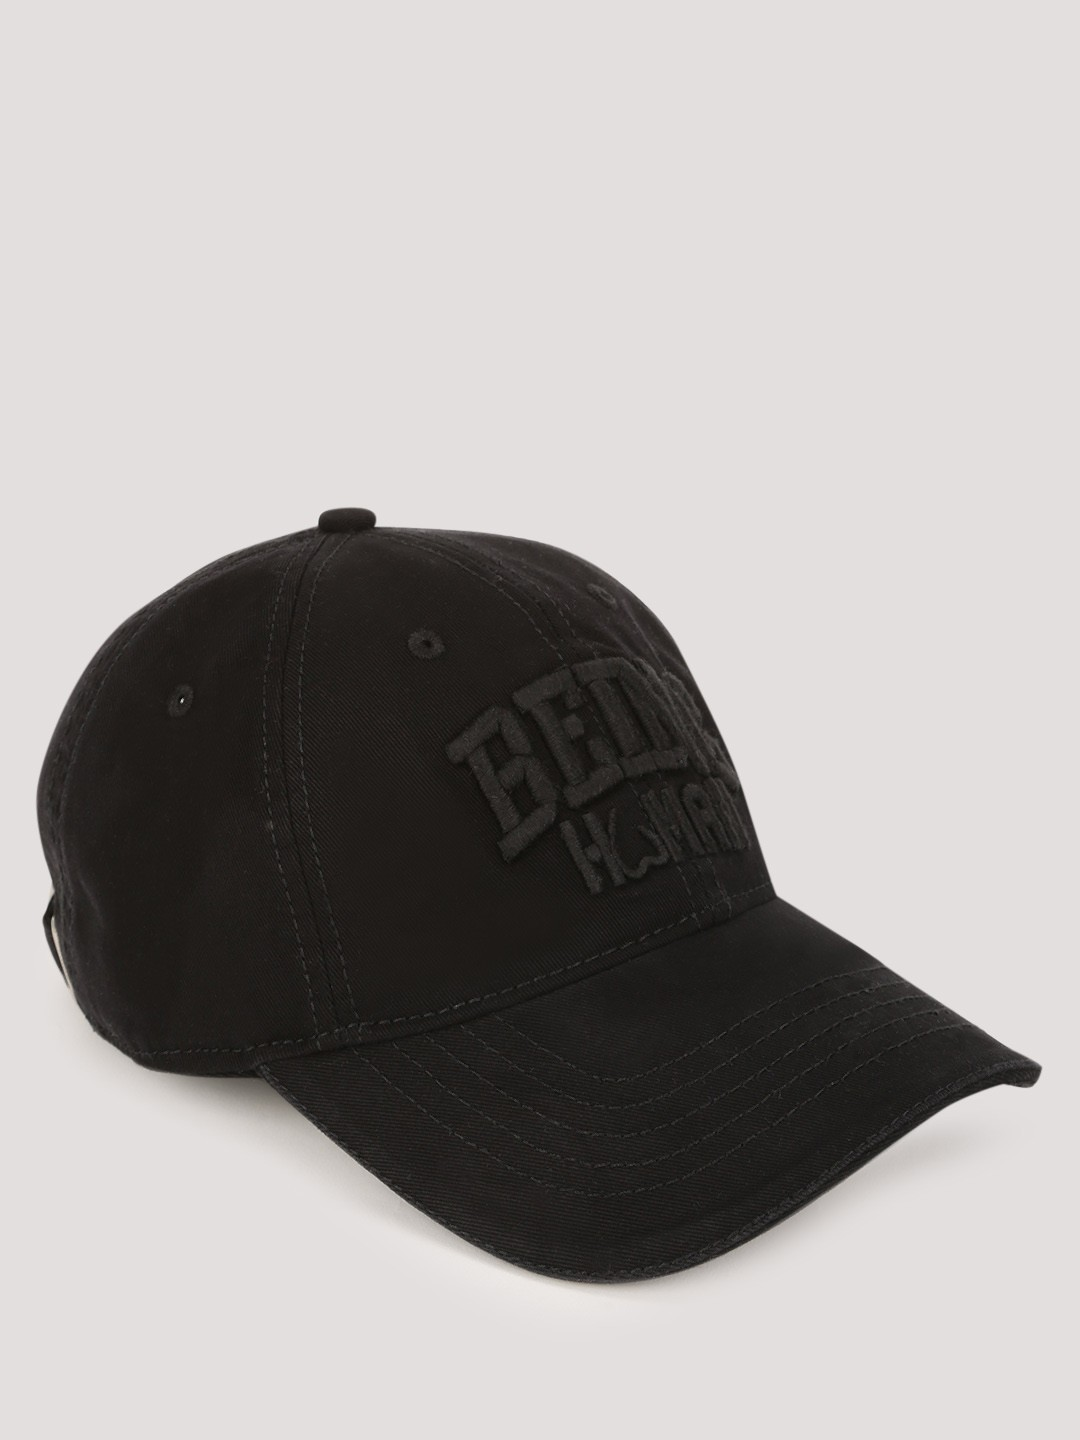 Buy Being Human Panel Cap With Embroidery For Men Men S